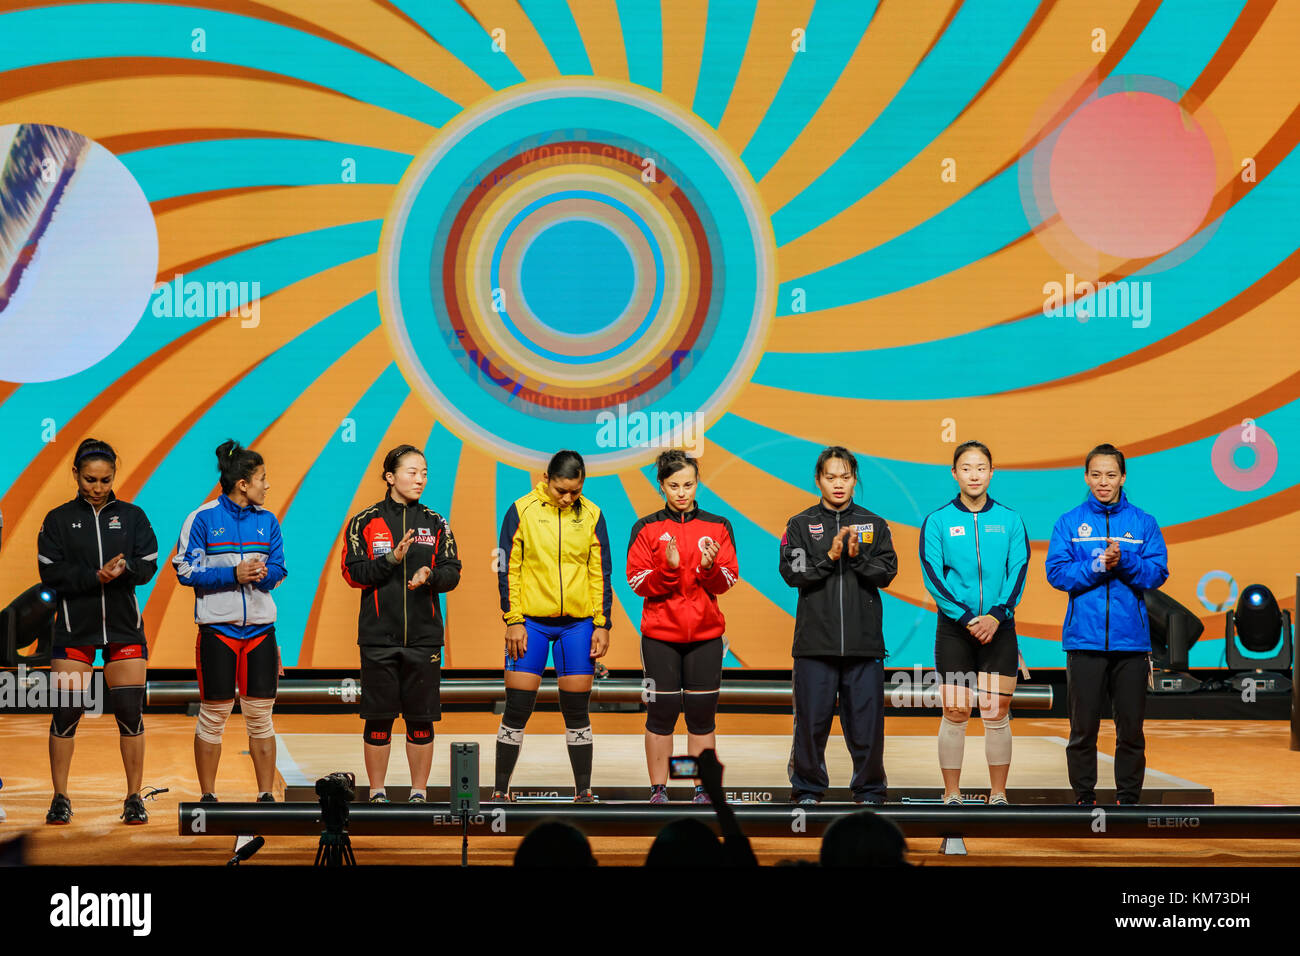 Anaheim, NOV 30: 2017 Athletes of International Weightlifting Federation World Championships on NOV 30, 2017 at - Stock Image